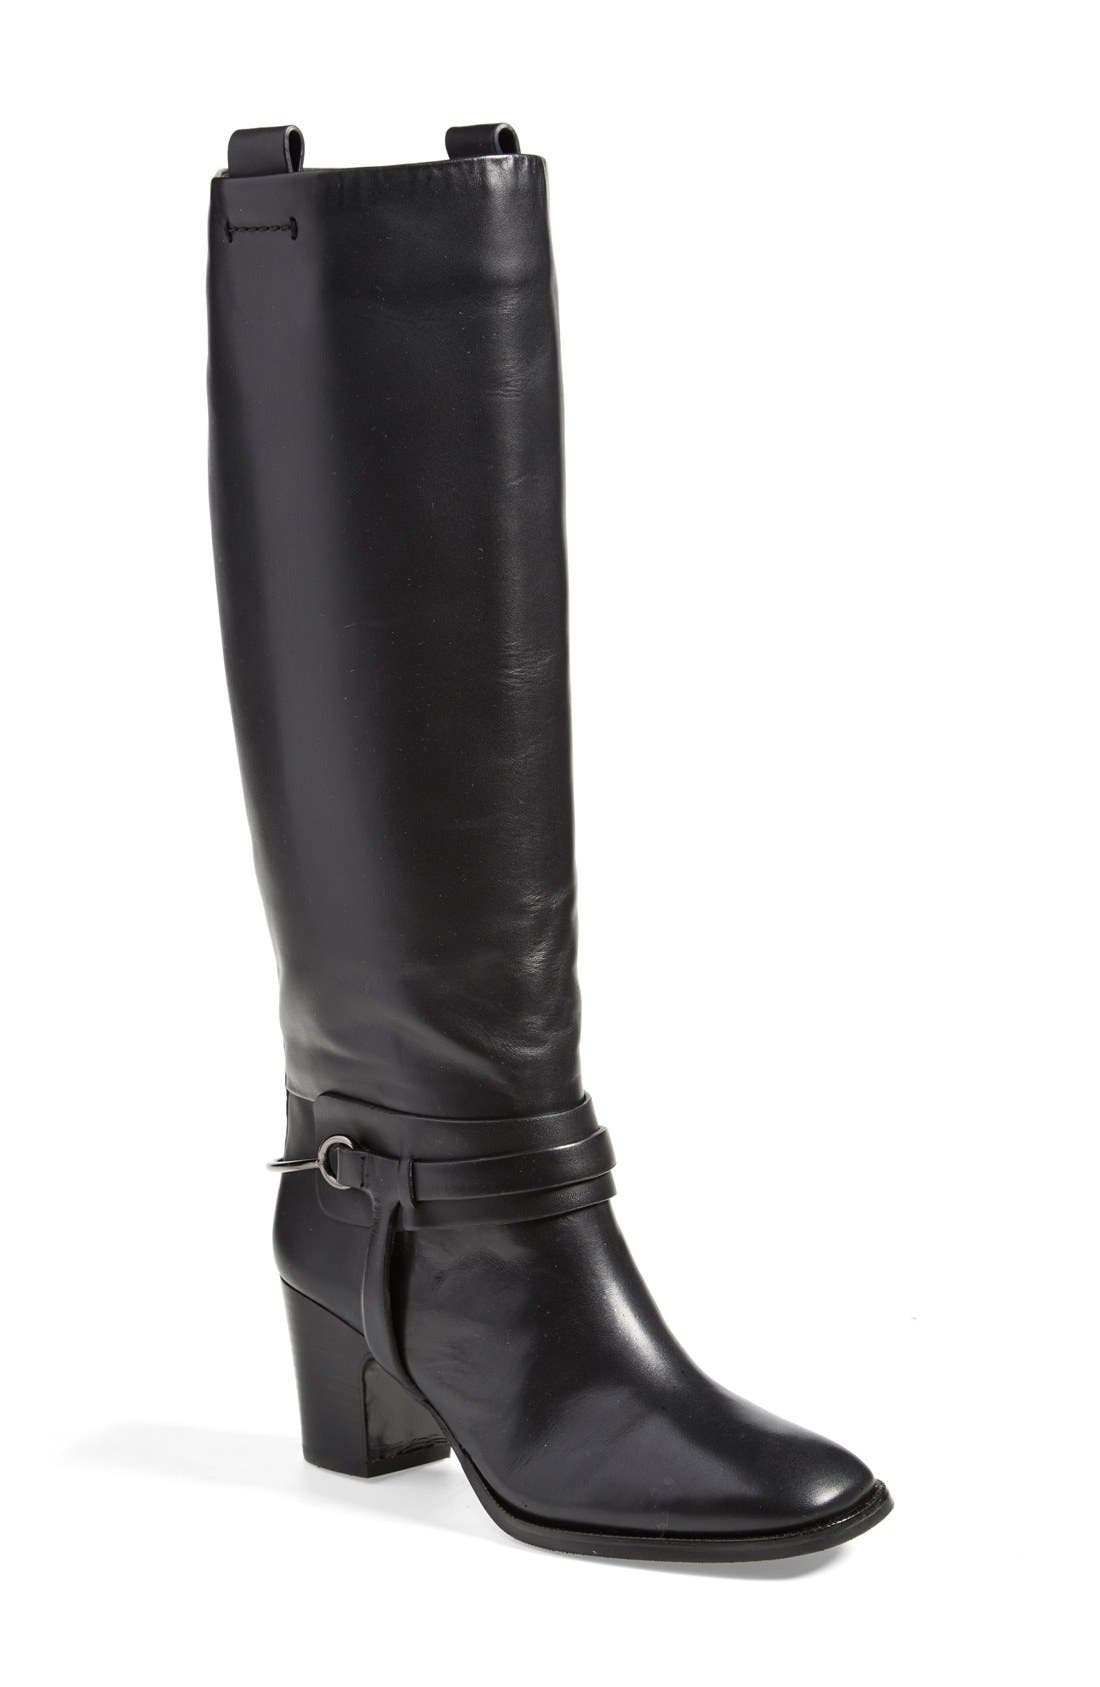 VC SIGNATURE 'Tazmin' Knee High Boot, Main, color, 002